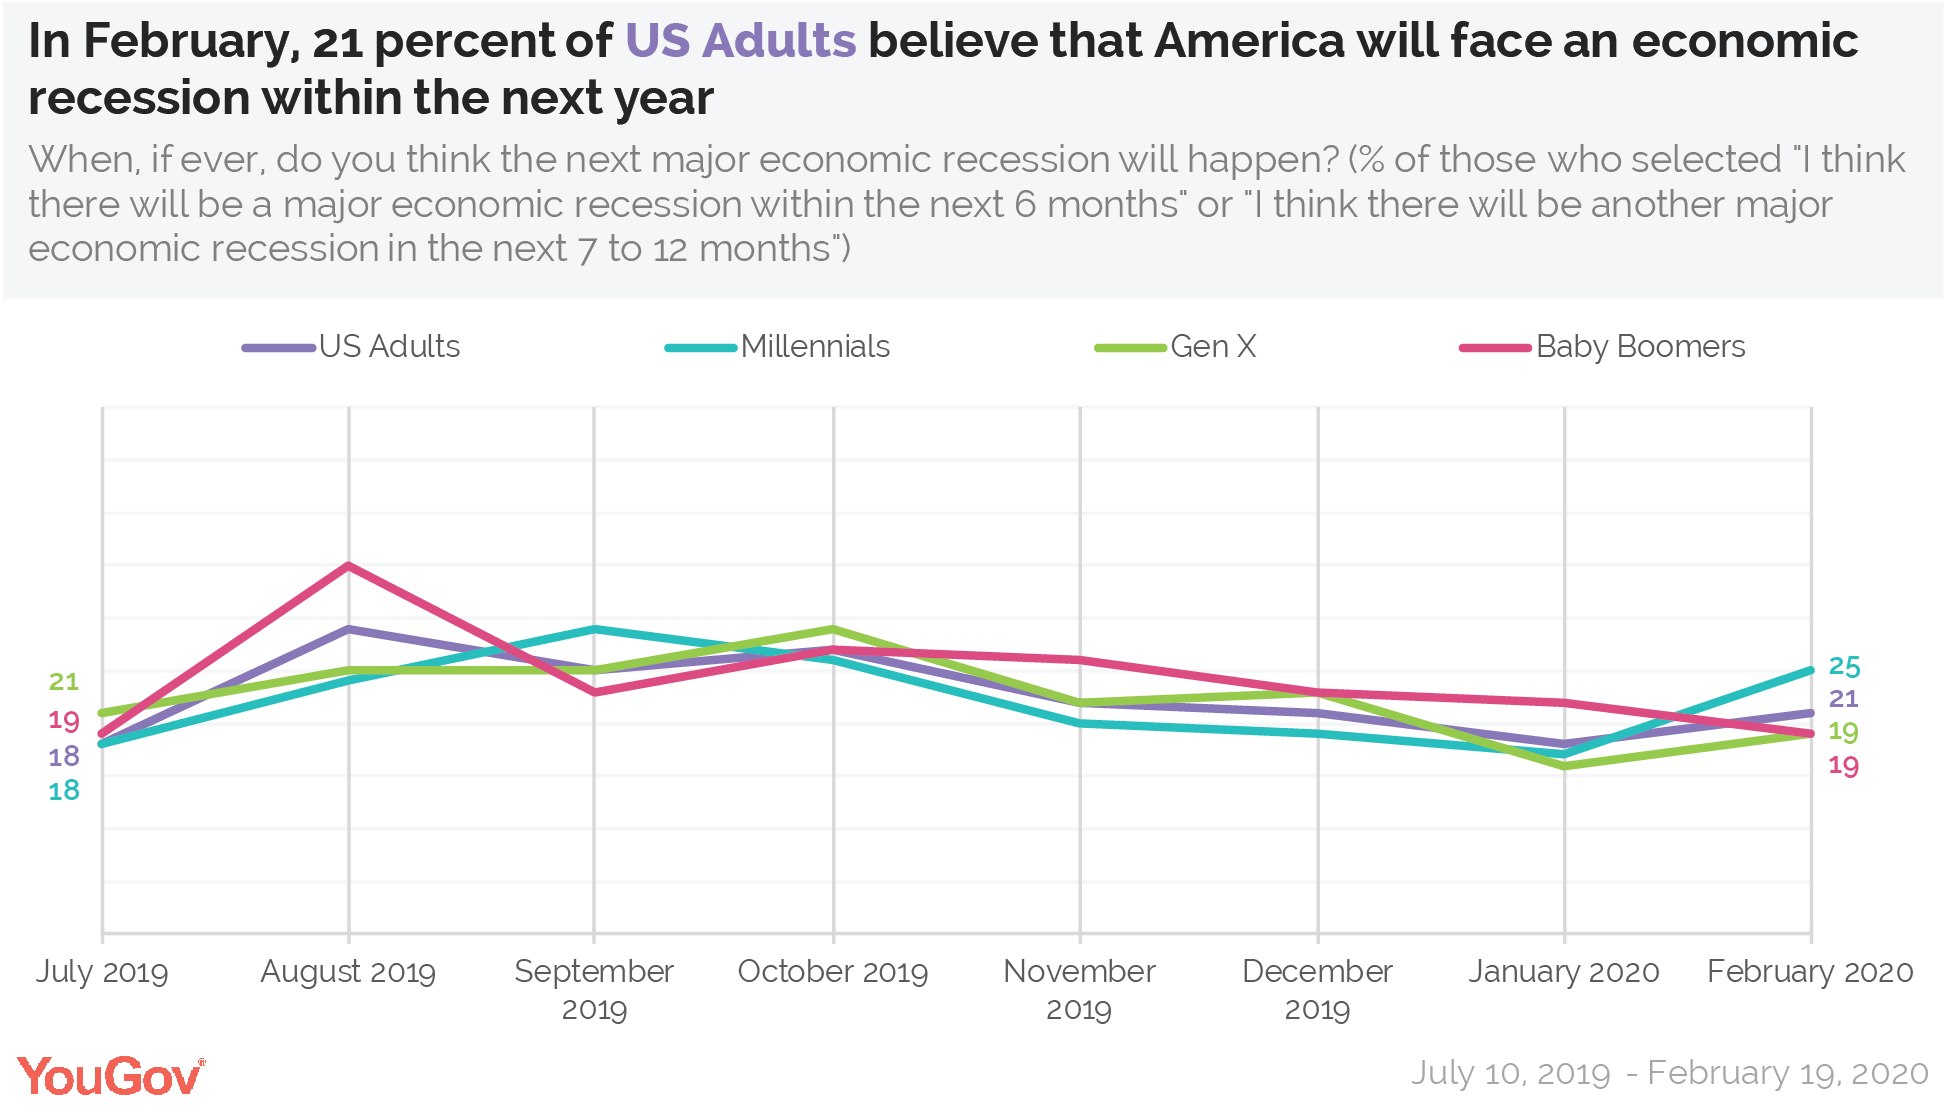 In February, 21 percent of US Adults believe that America will face an economic recession within the next year